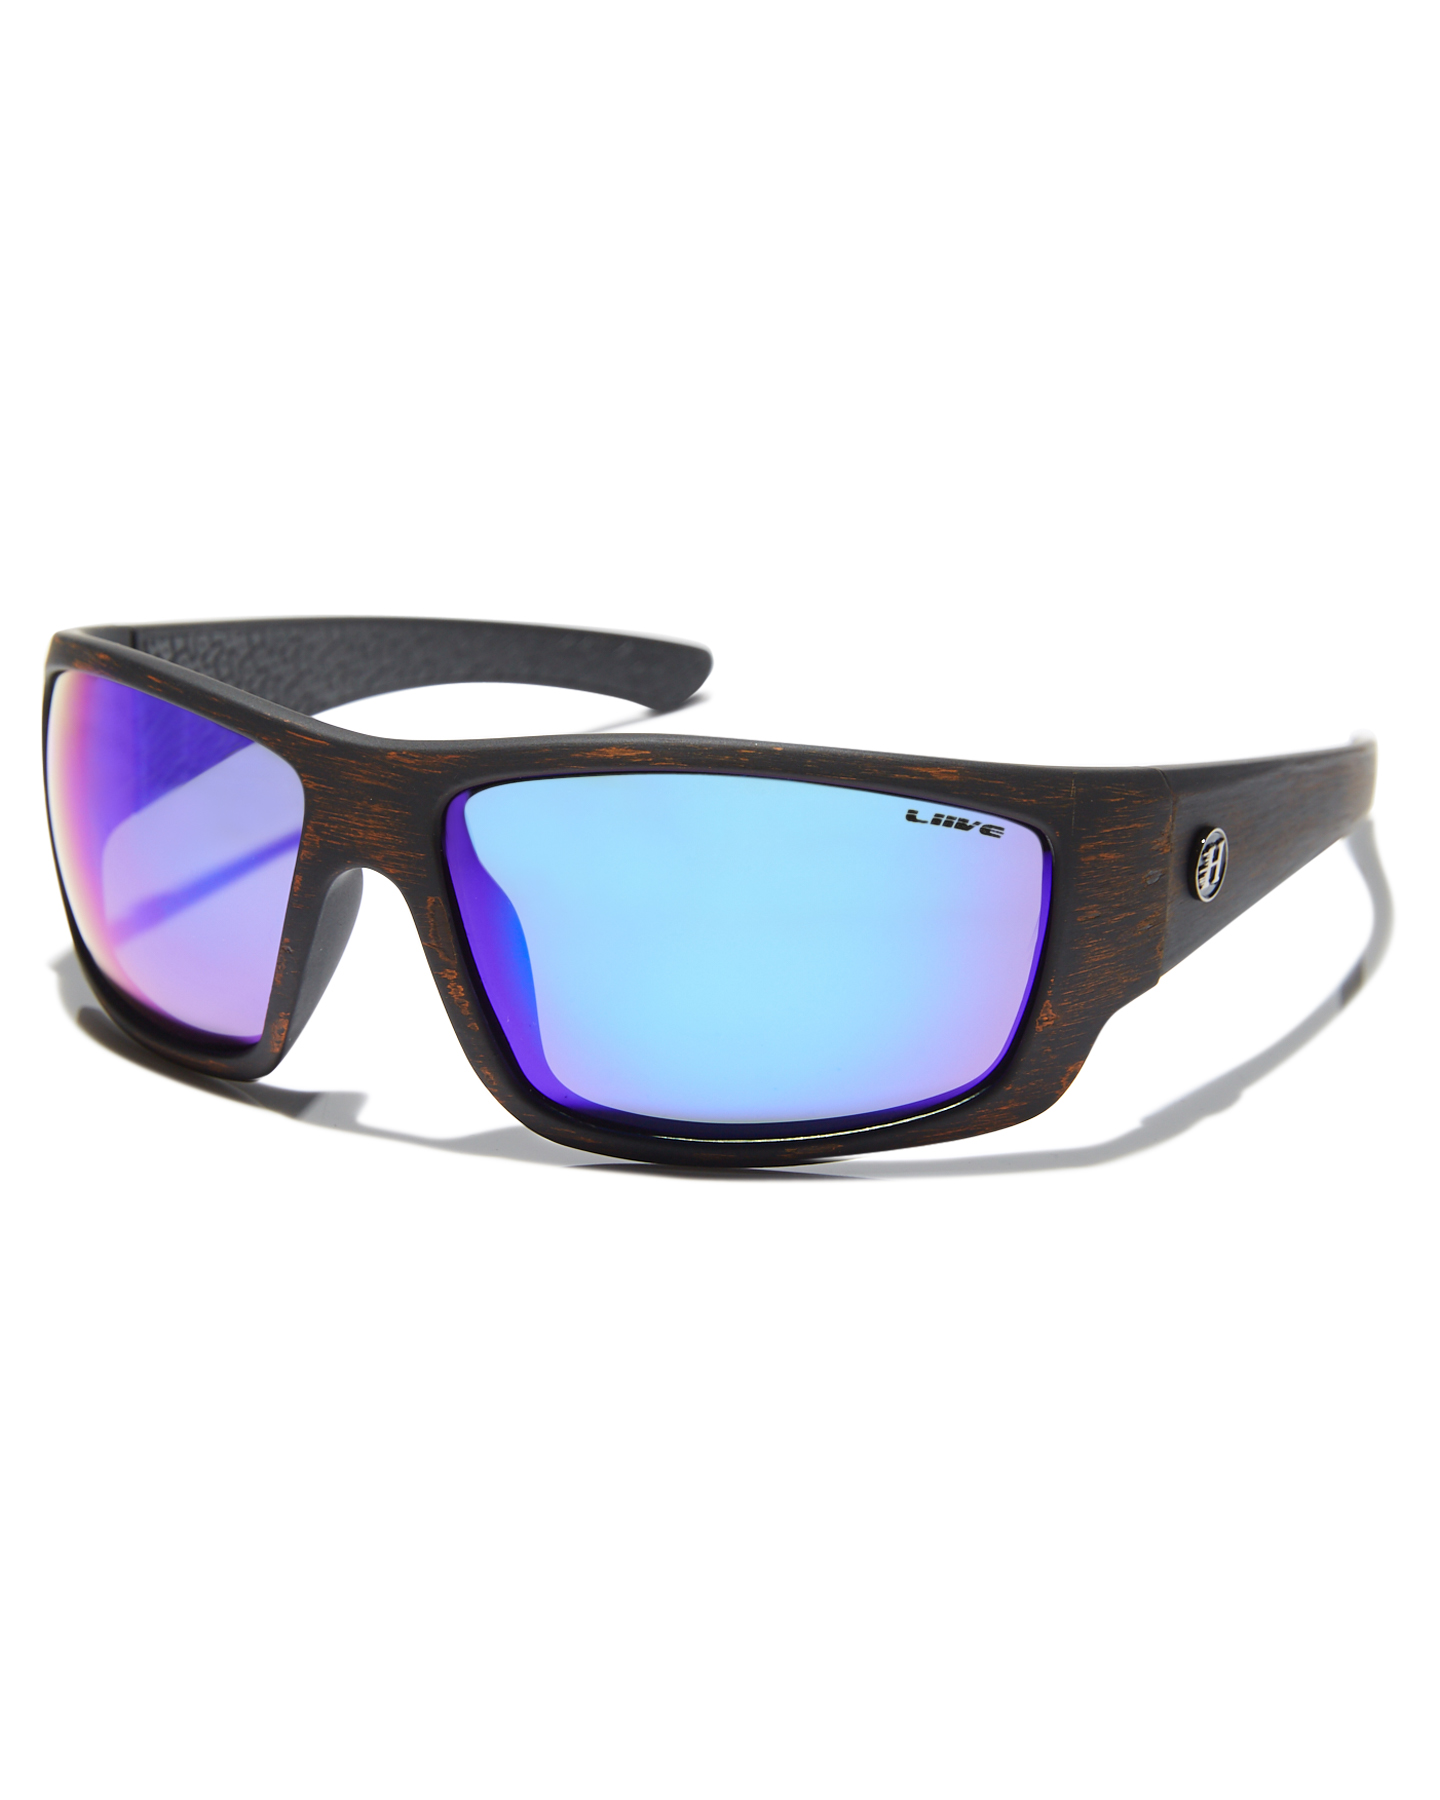 28c0041f493 Liive Vision X Mad Hueys Anchor Polarised Sunglasses Black Wood Mens ...